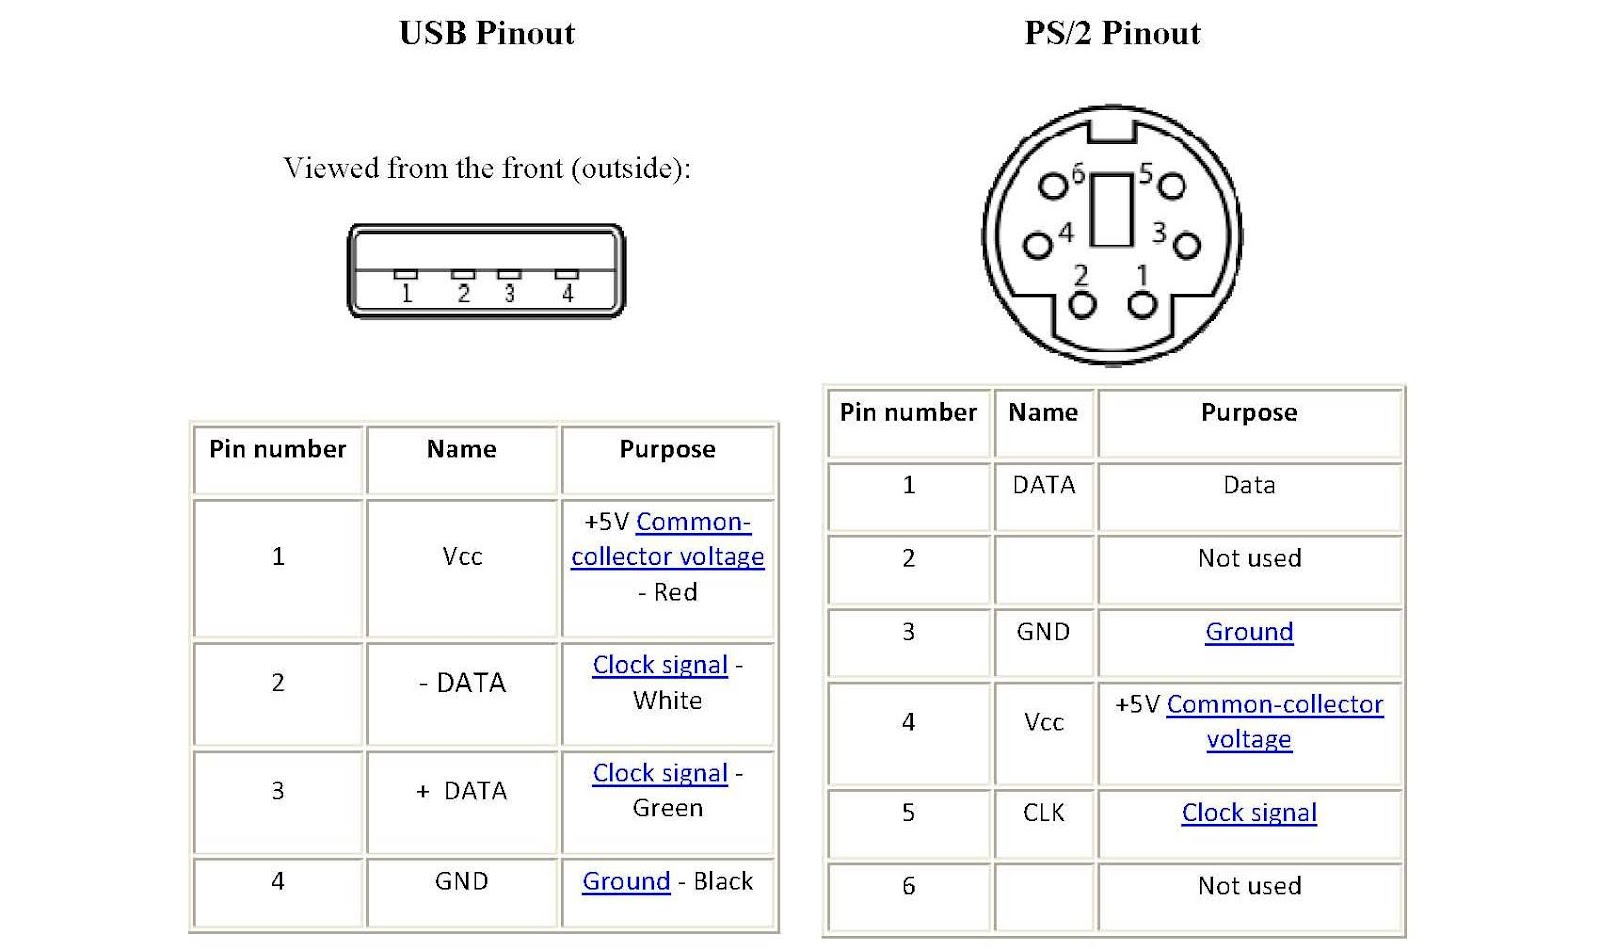 ps2 usb wiring diagram ps2 wiring diagrams ps2 mouse to usb wiring diagram ps2 auto wiring diagram database